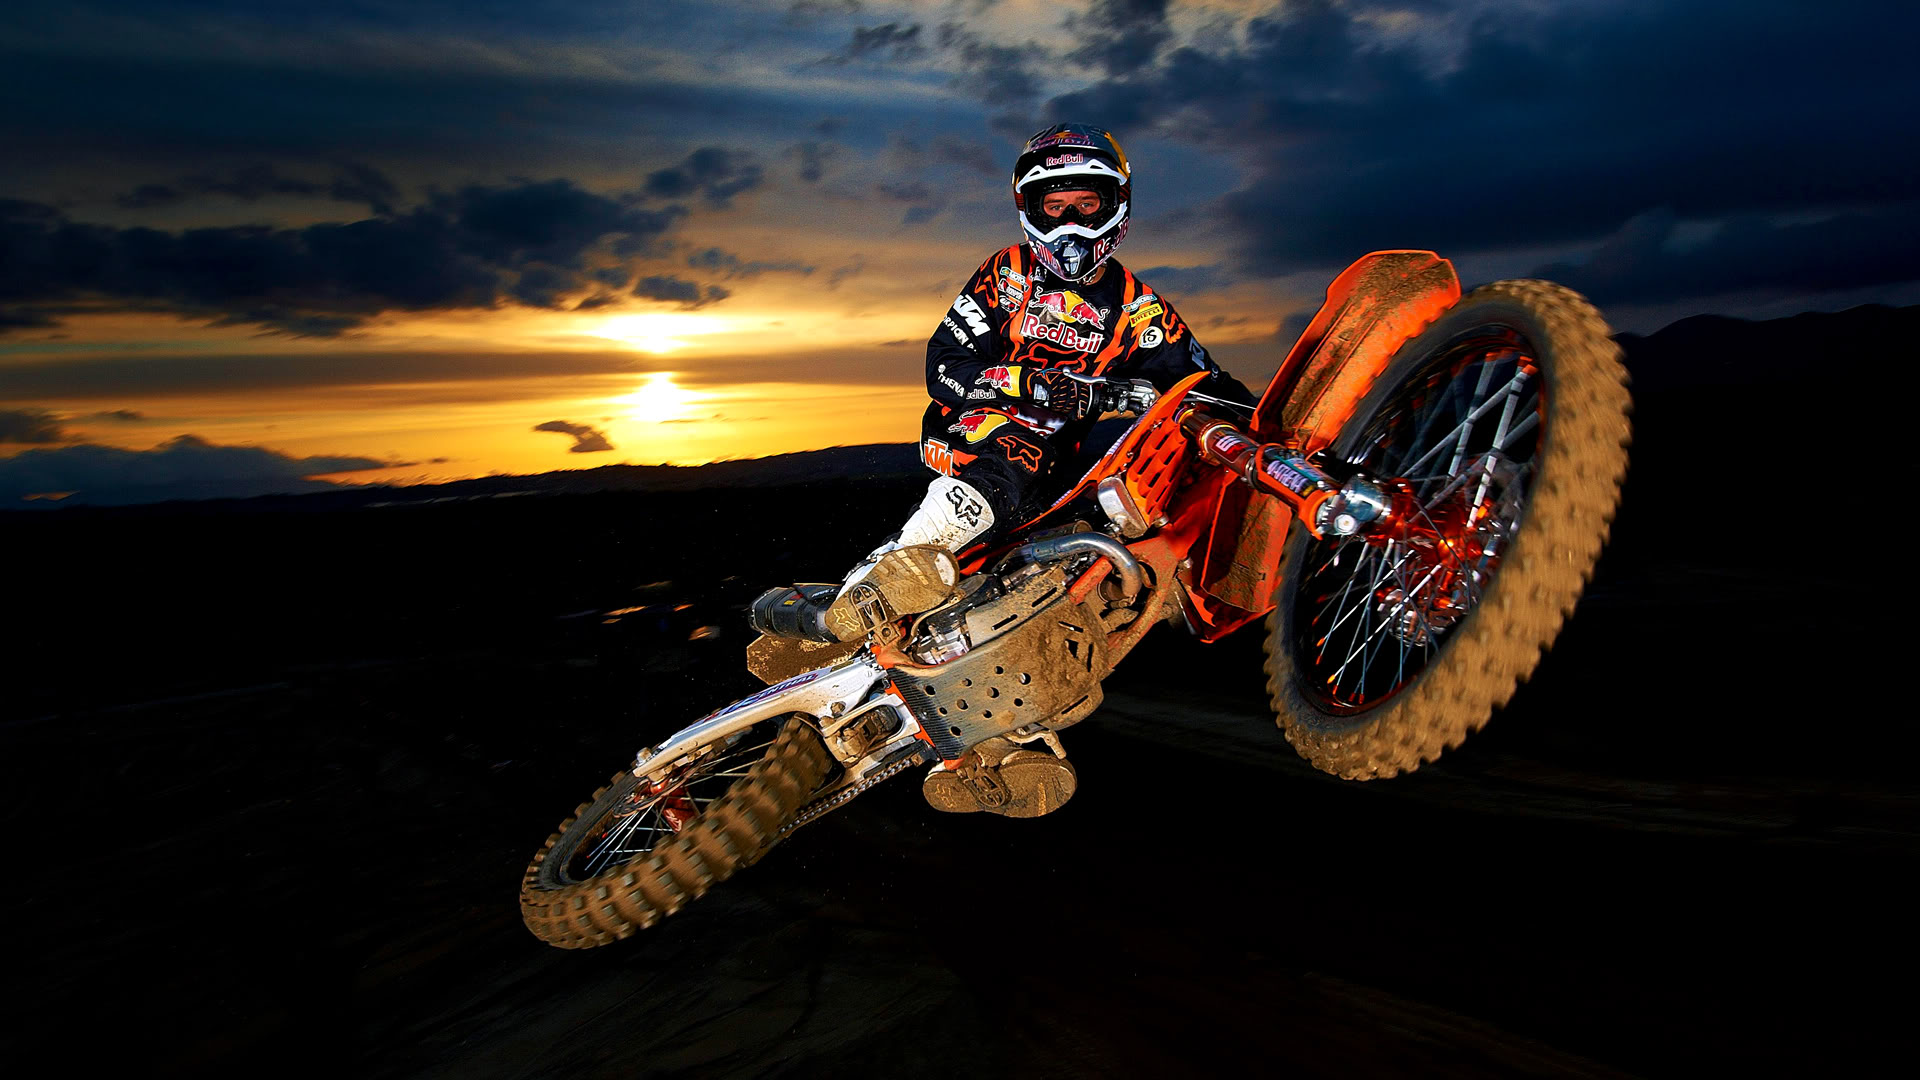 Motocross And Racing Car Action Wallpaper HD 2 2613 Wallpaper High 1920x1080